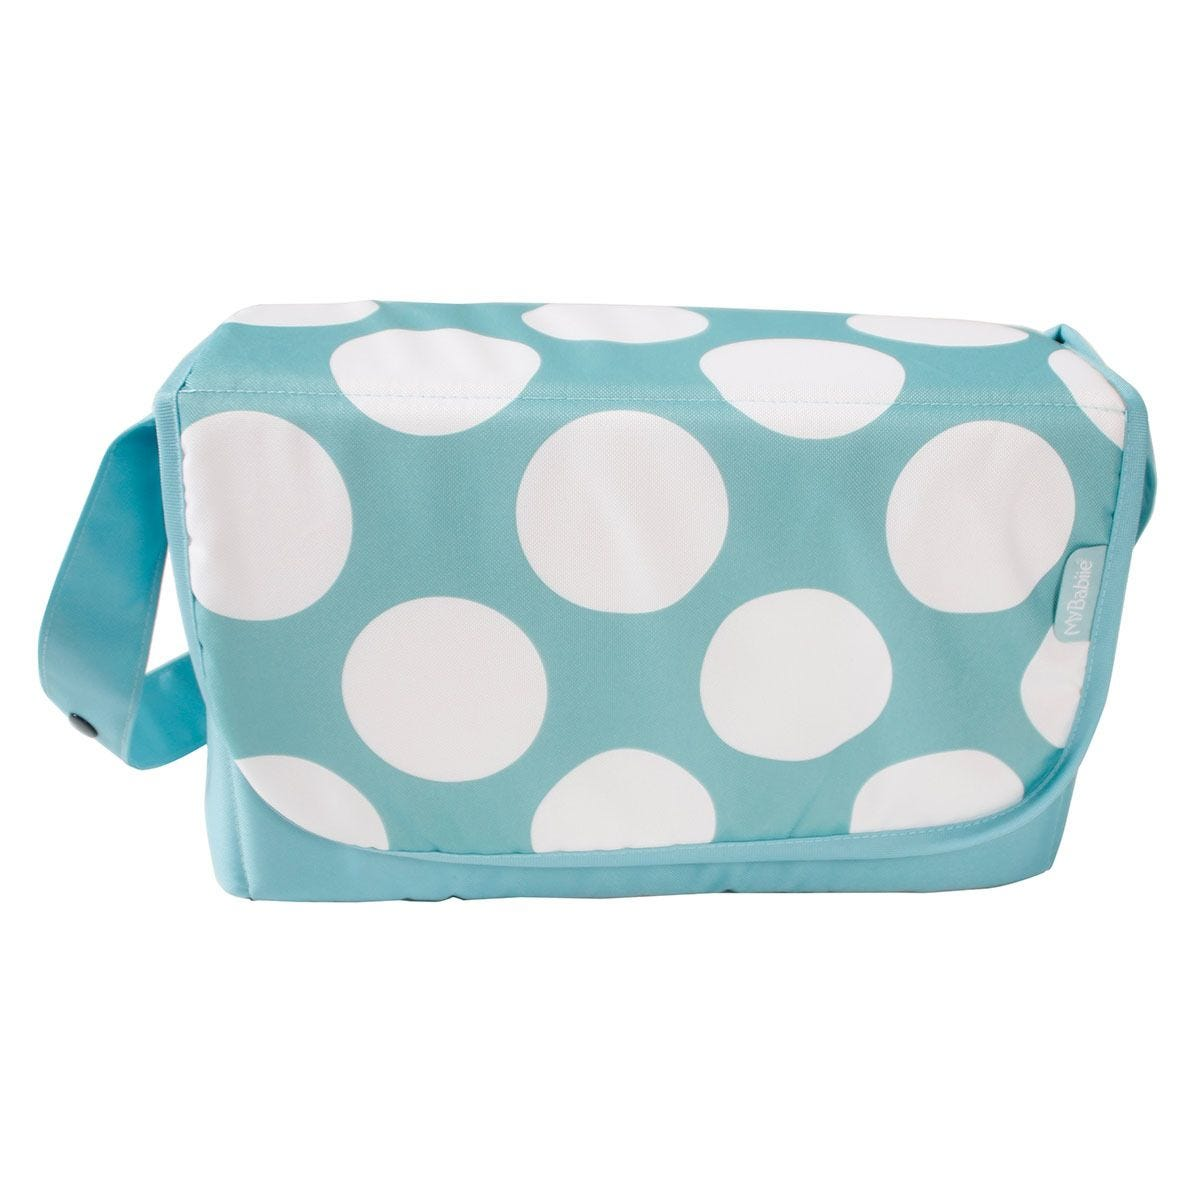 My Babiie Changing Bag - Teal Dots